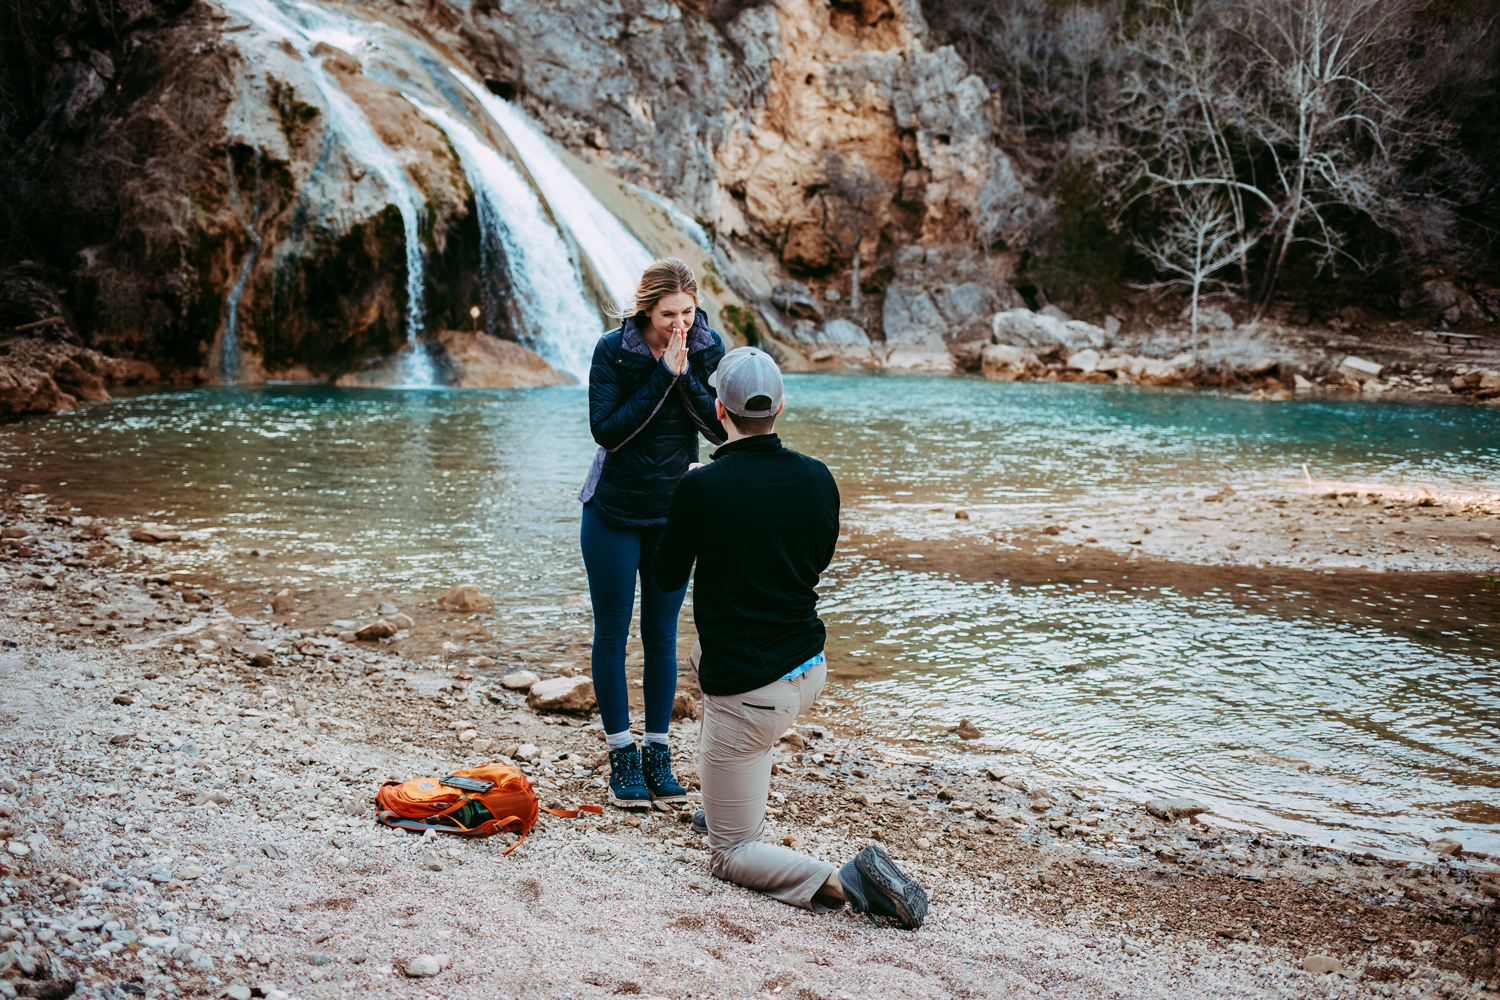 Surprise proposal at Turner Falls in front of the waterfall in Oklahoma.